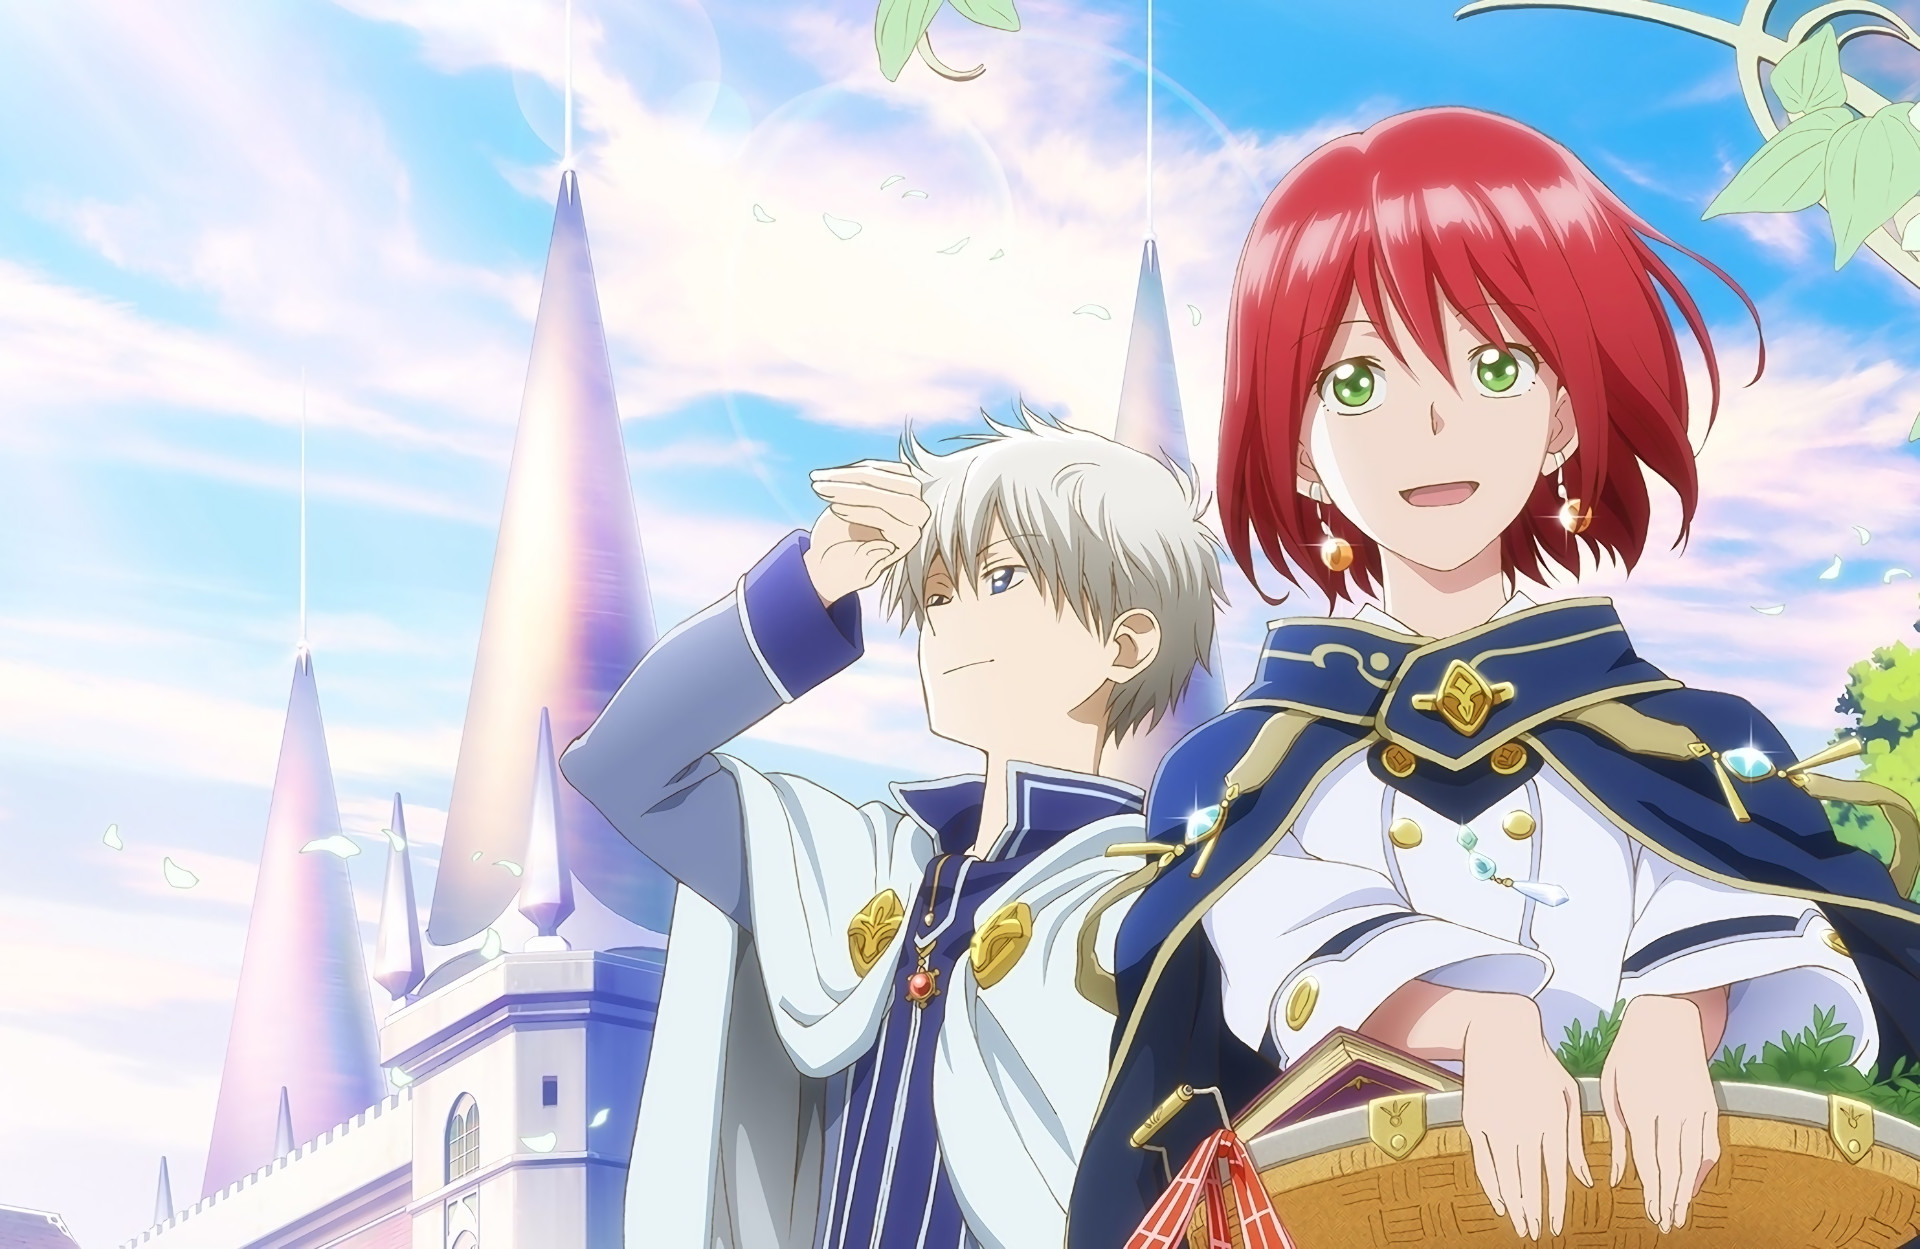 1920x1249 Anime - Snow White with the Red Hair Shirayuki (Snow White With The Red Hair